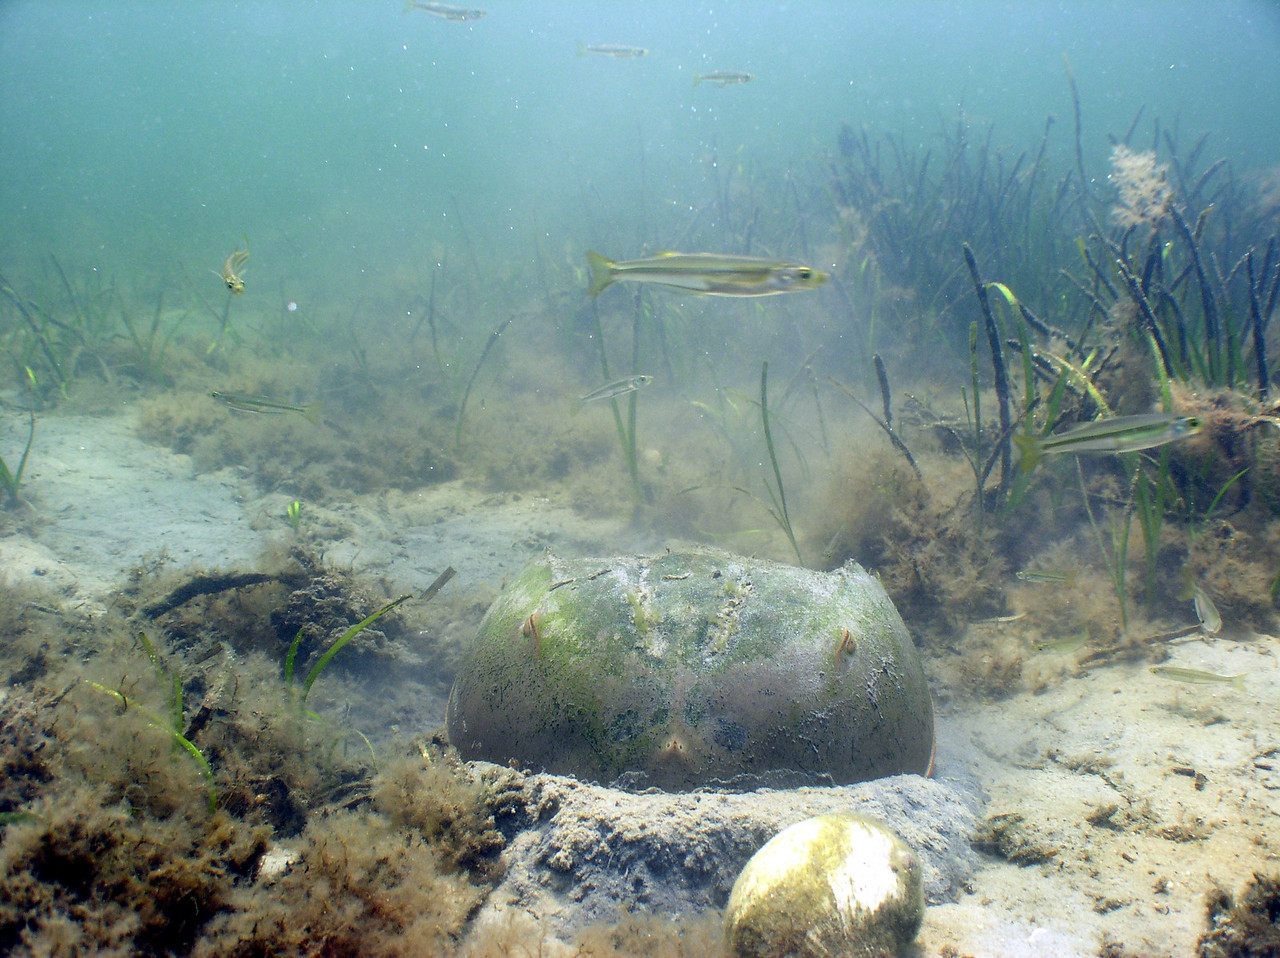 Horseshoe crabs are more closely related to arachnids (spiders, scorpions, ticks, mites...) than to crustaceans, such as crabs.  This chelicerate plows through the sand in search of shellfish and worms.  Its telson not only functions as a rudder, but can be used to right itself if it's accidentally turned over.